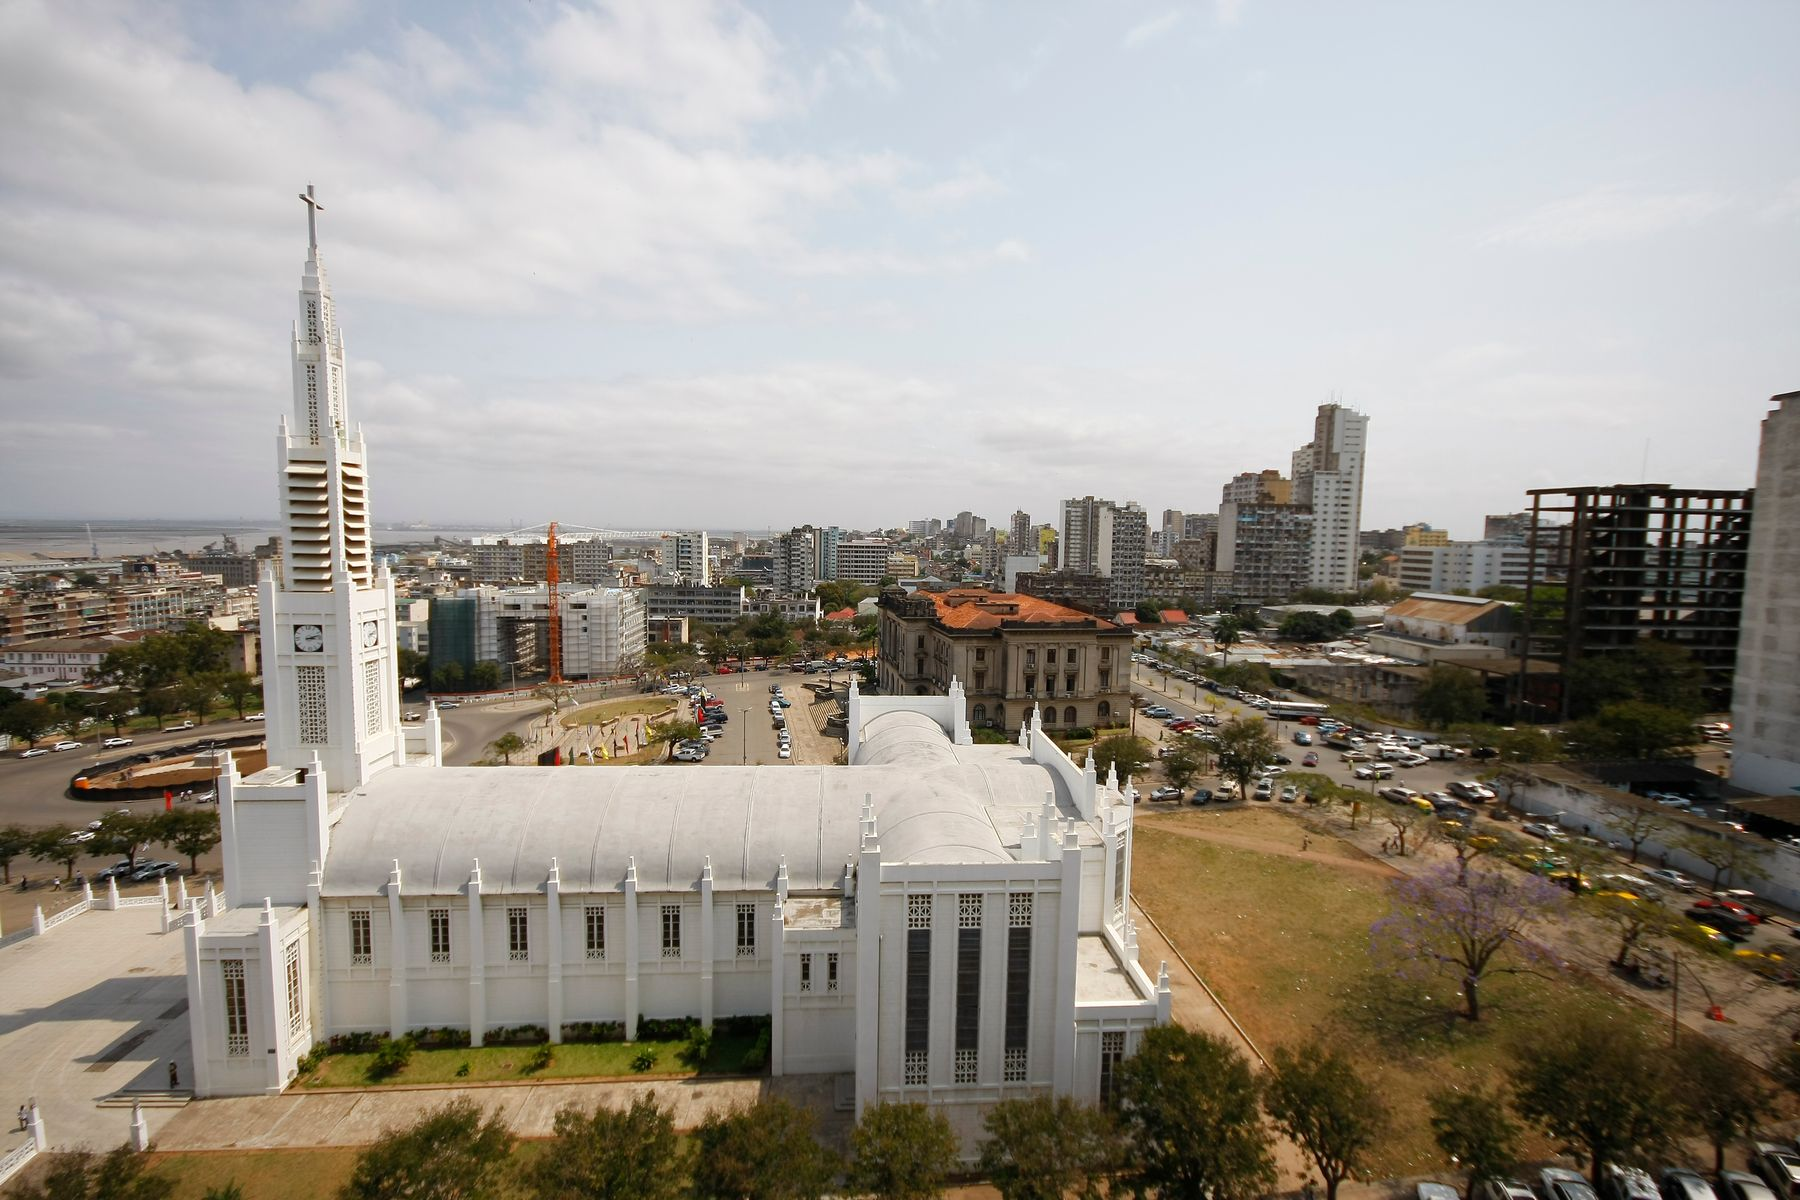 The Cathedral of Our Lady of the Immaculate Conception in downtown Maputo designed by the Portuguese civil engineer Marcial Simões de Freitas e Costa